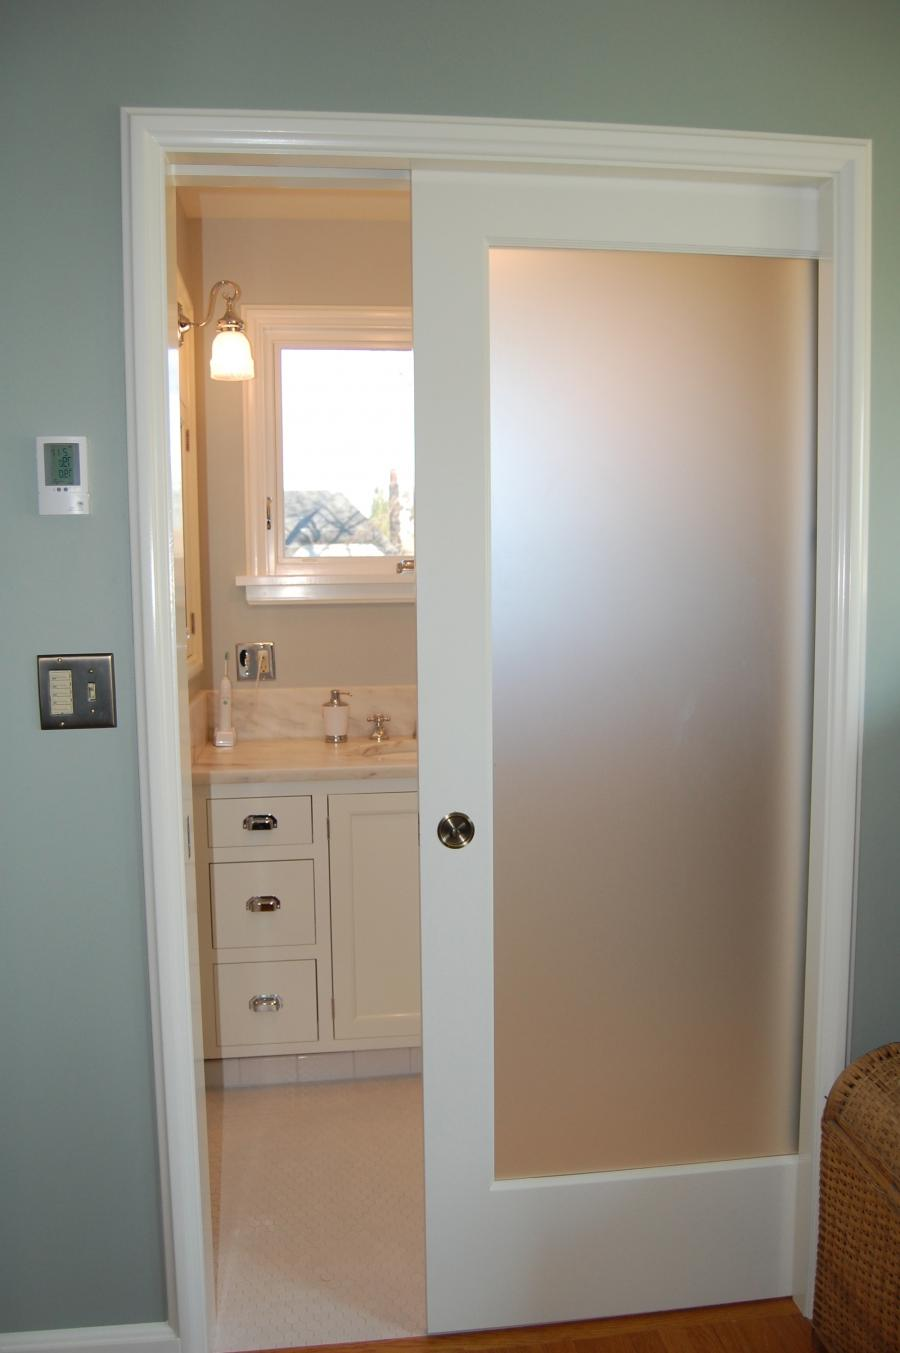 Show Me Photos Of Pocket Doors For Bathrooms